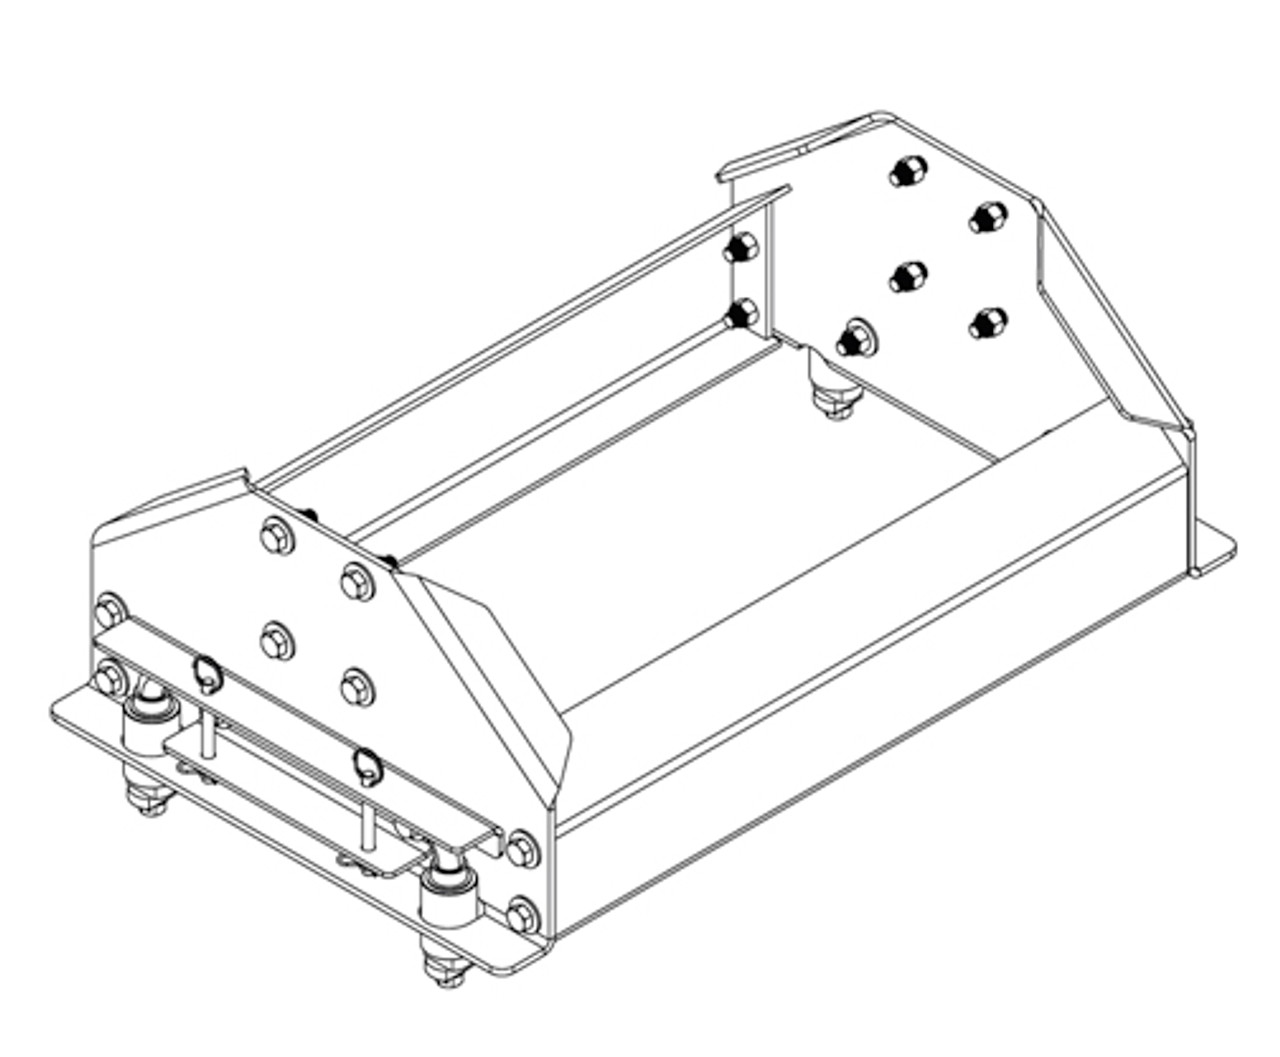 6040 --- Demco UMS Side Rail Kit for Reese Under Bed Brackets